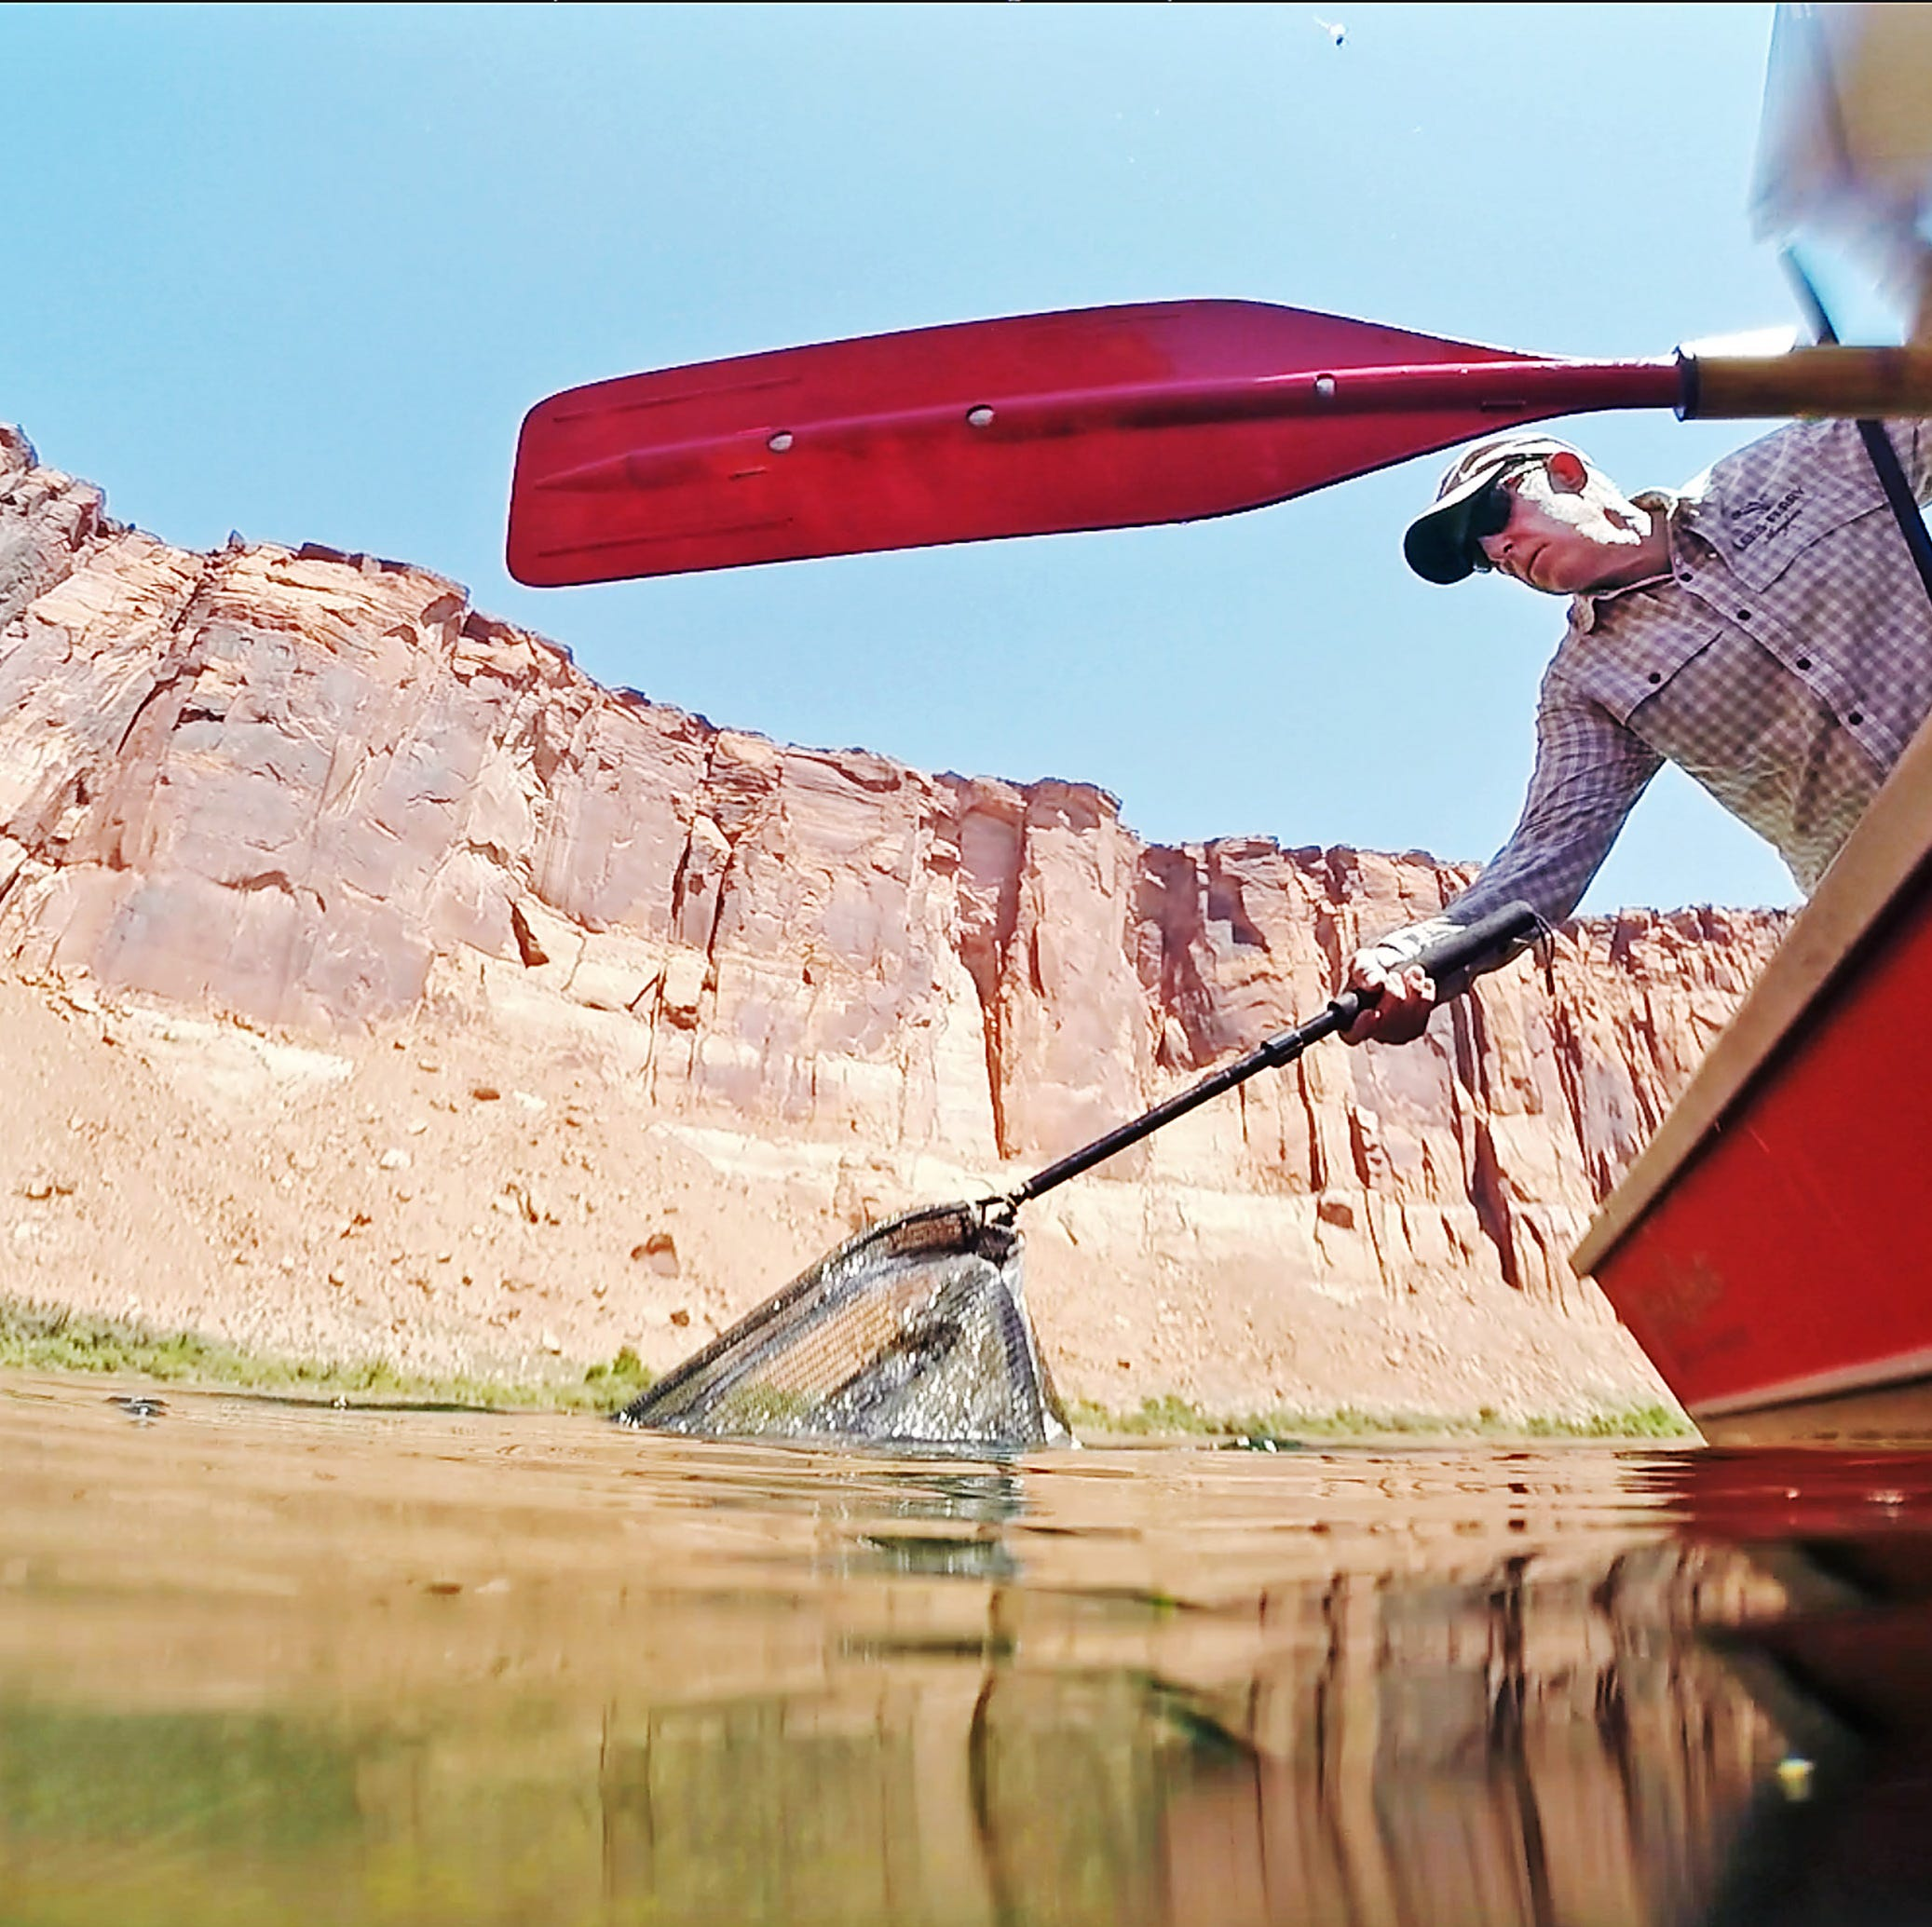 Grand Canyon flood fattened fish, but it's not all good news on the Colorado River